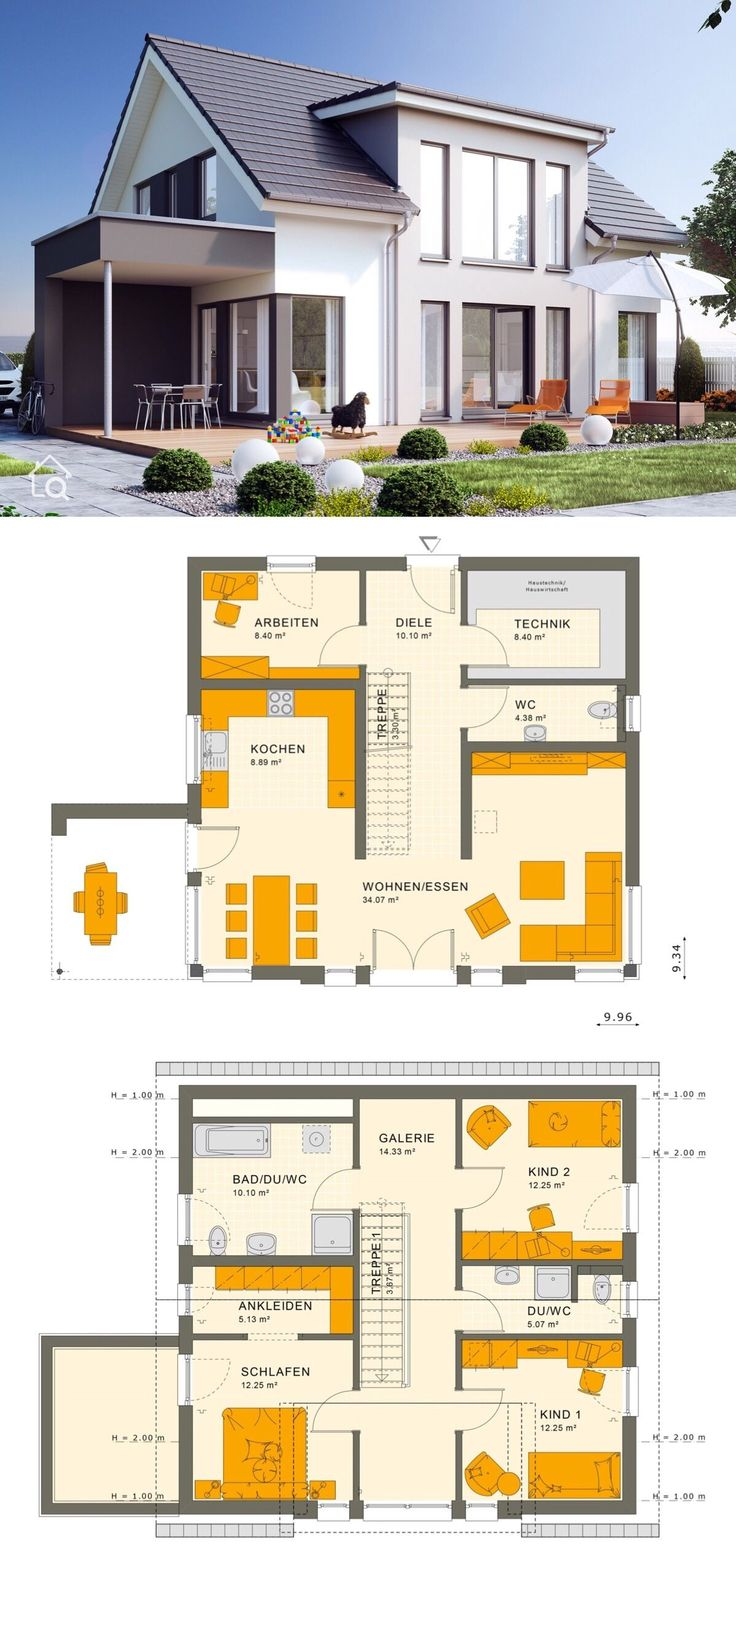 Detached house modern with saddle roof architecture & gable, floor plan t …  – HausbauDirekt